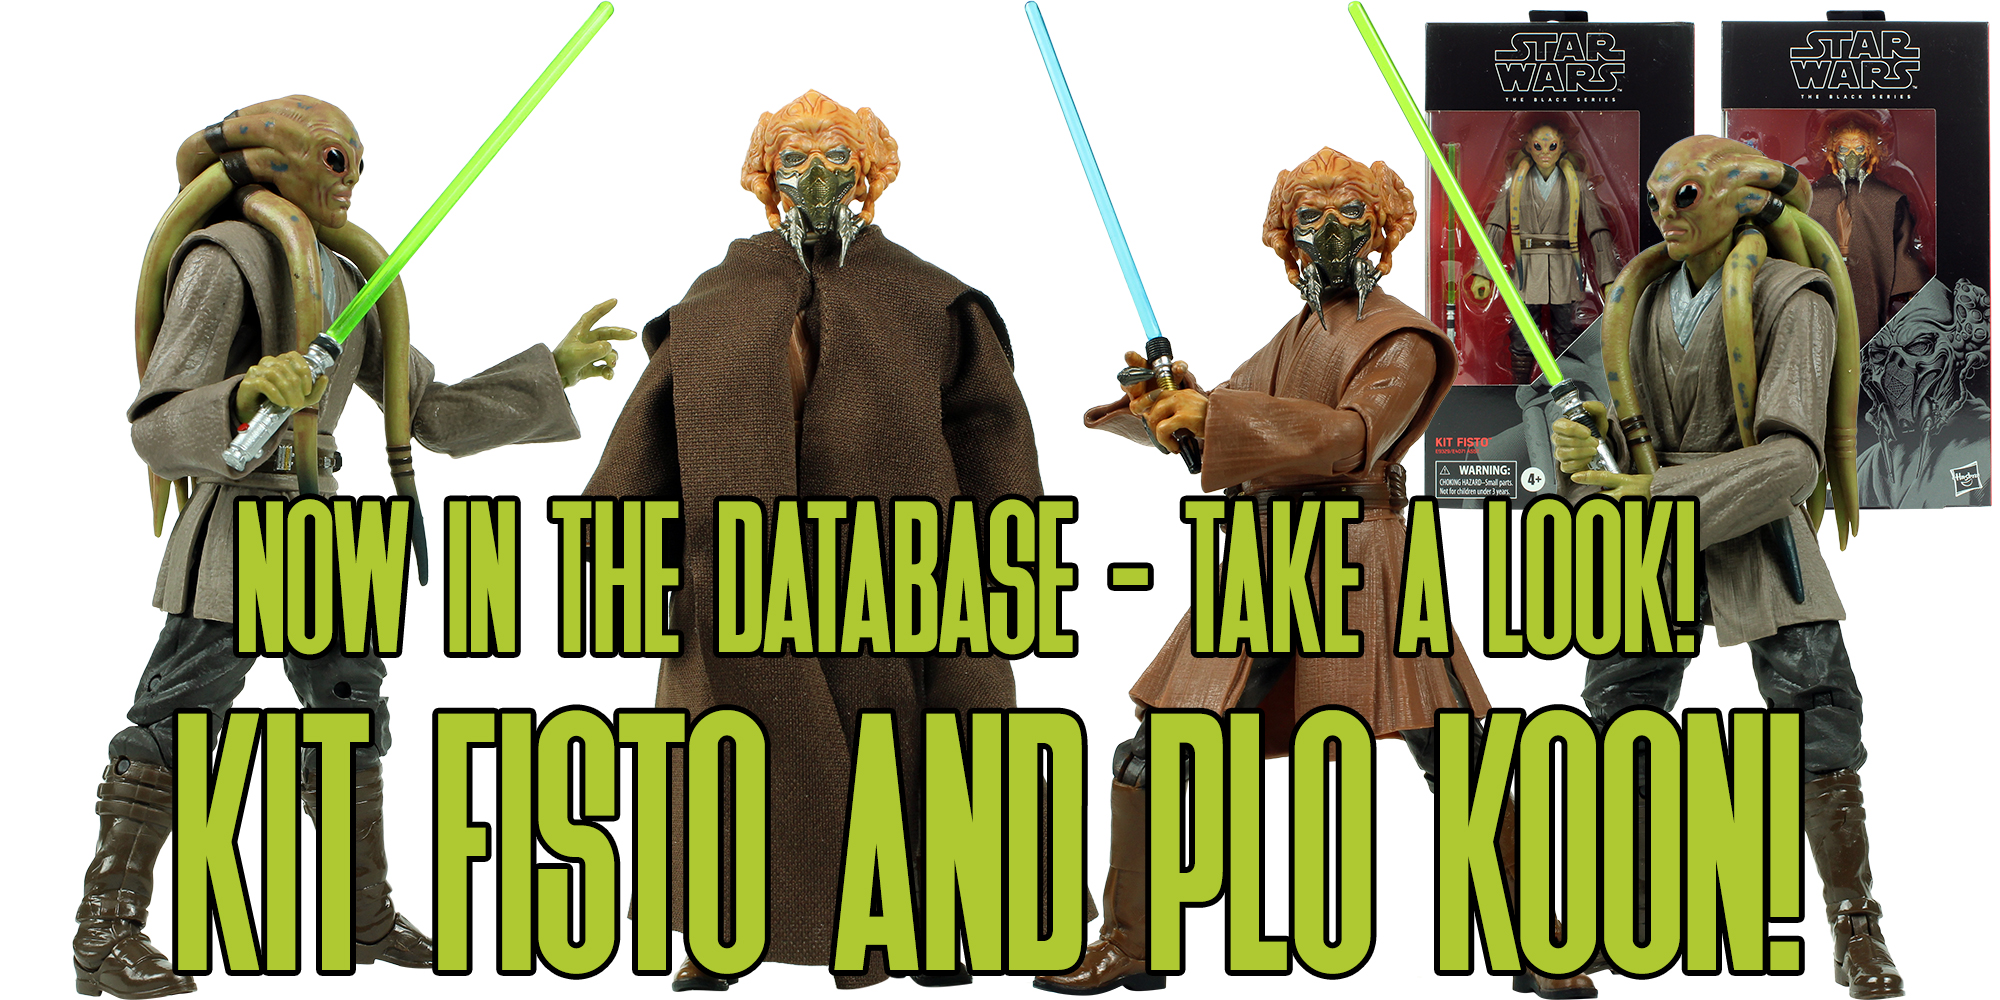 Black Series Kit Fisto And Plo Koon